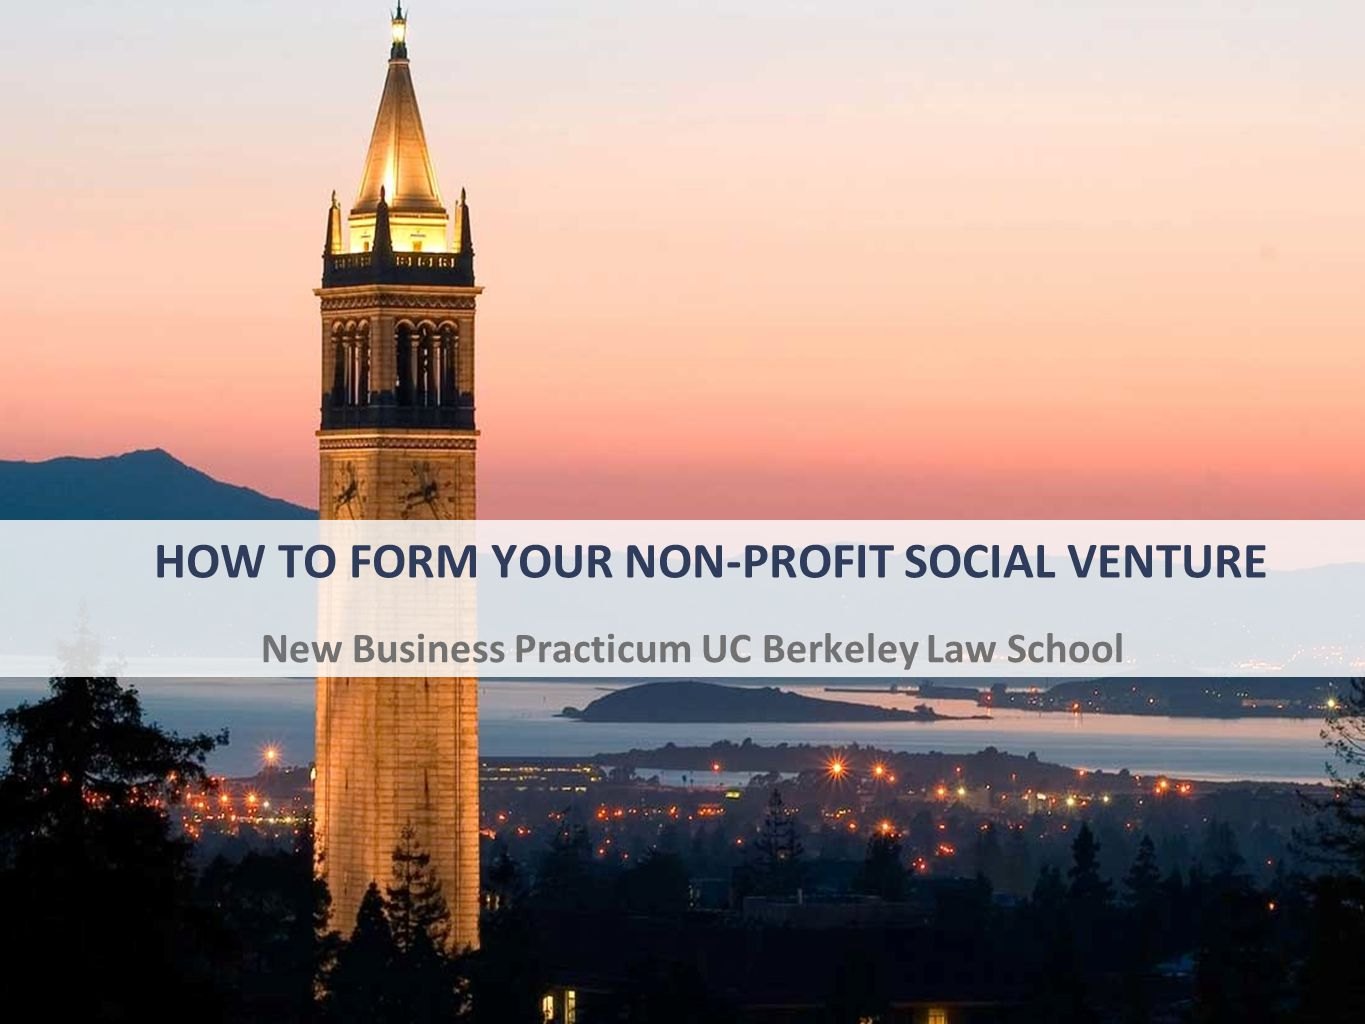 HOW TO FORM YOUR NON-PROFIT SOCIAL VENTURE New Business Practicum UC Berkeley Law School